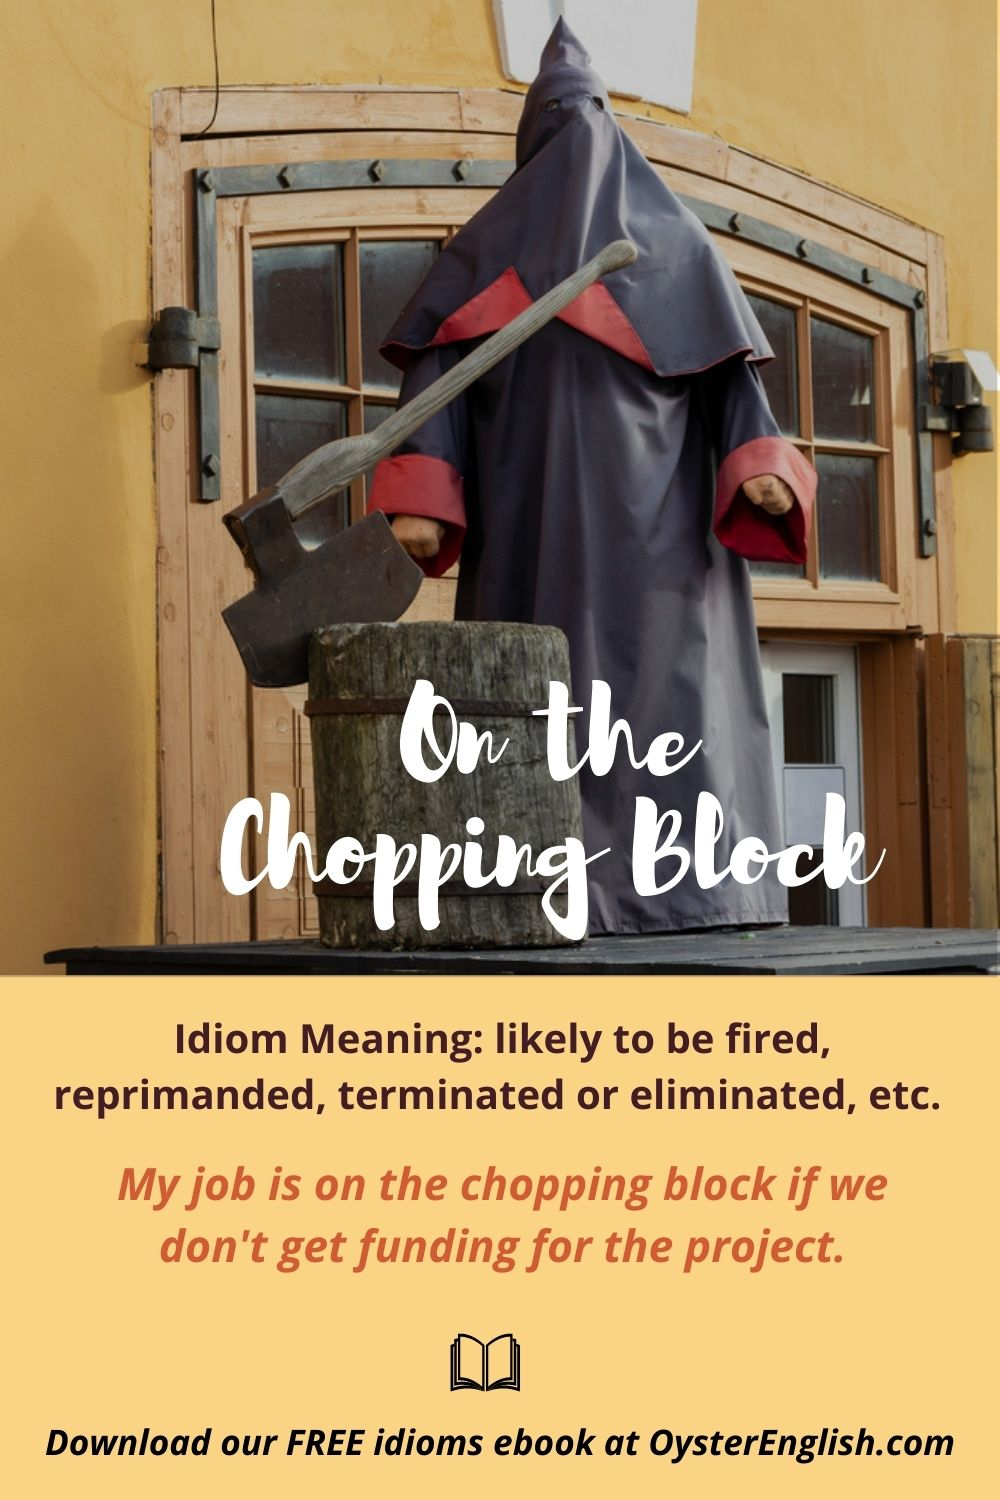 A Medieval executioner, wearing a hooded cloak, stands at a chopping block that has a huge ax in it. Caption: My job is on the chopping block if we don't get funding for the project.